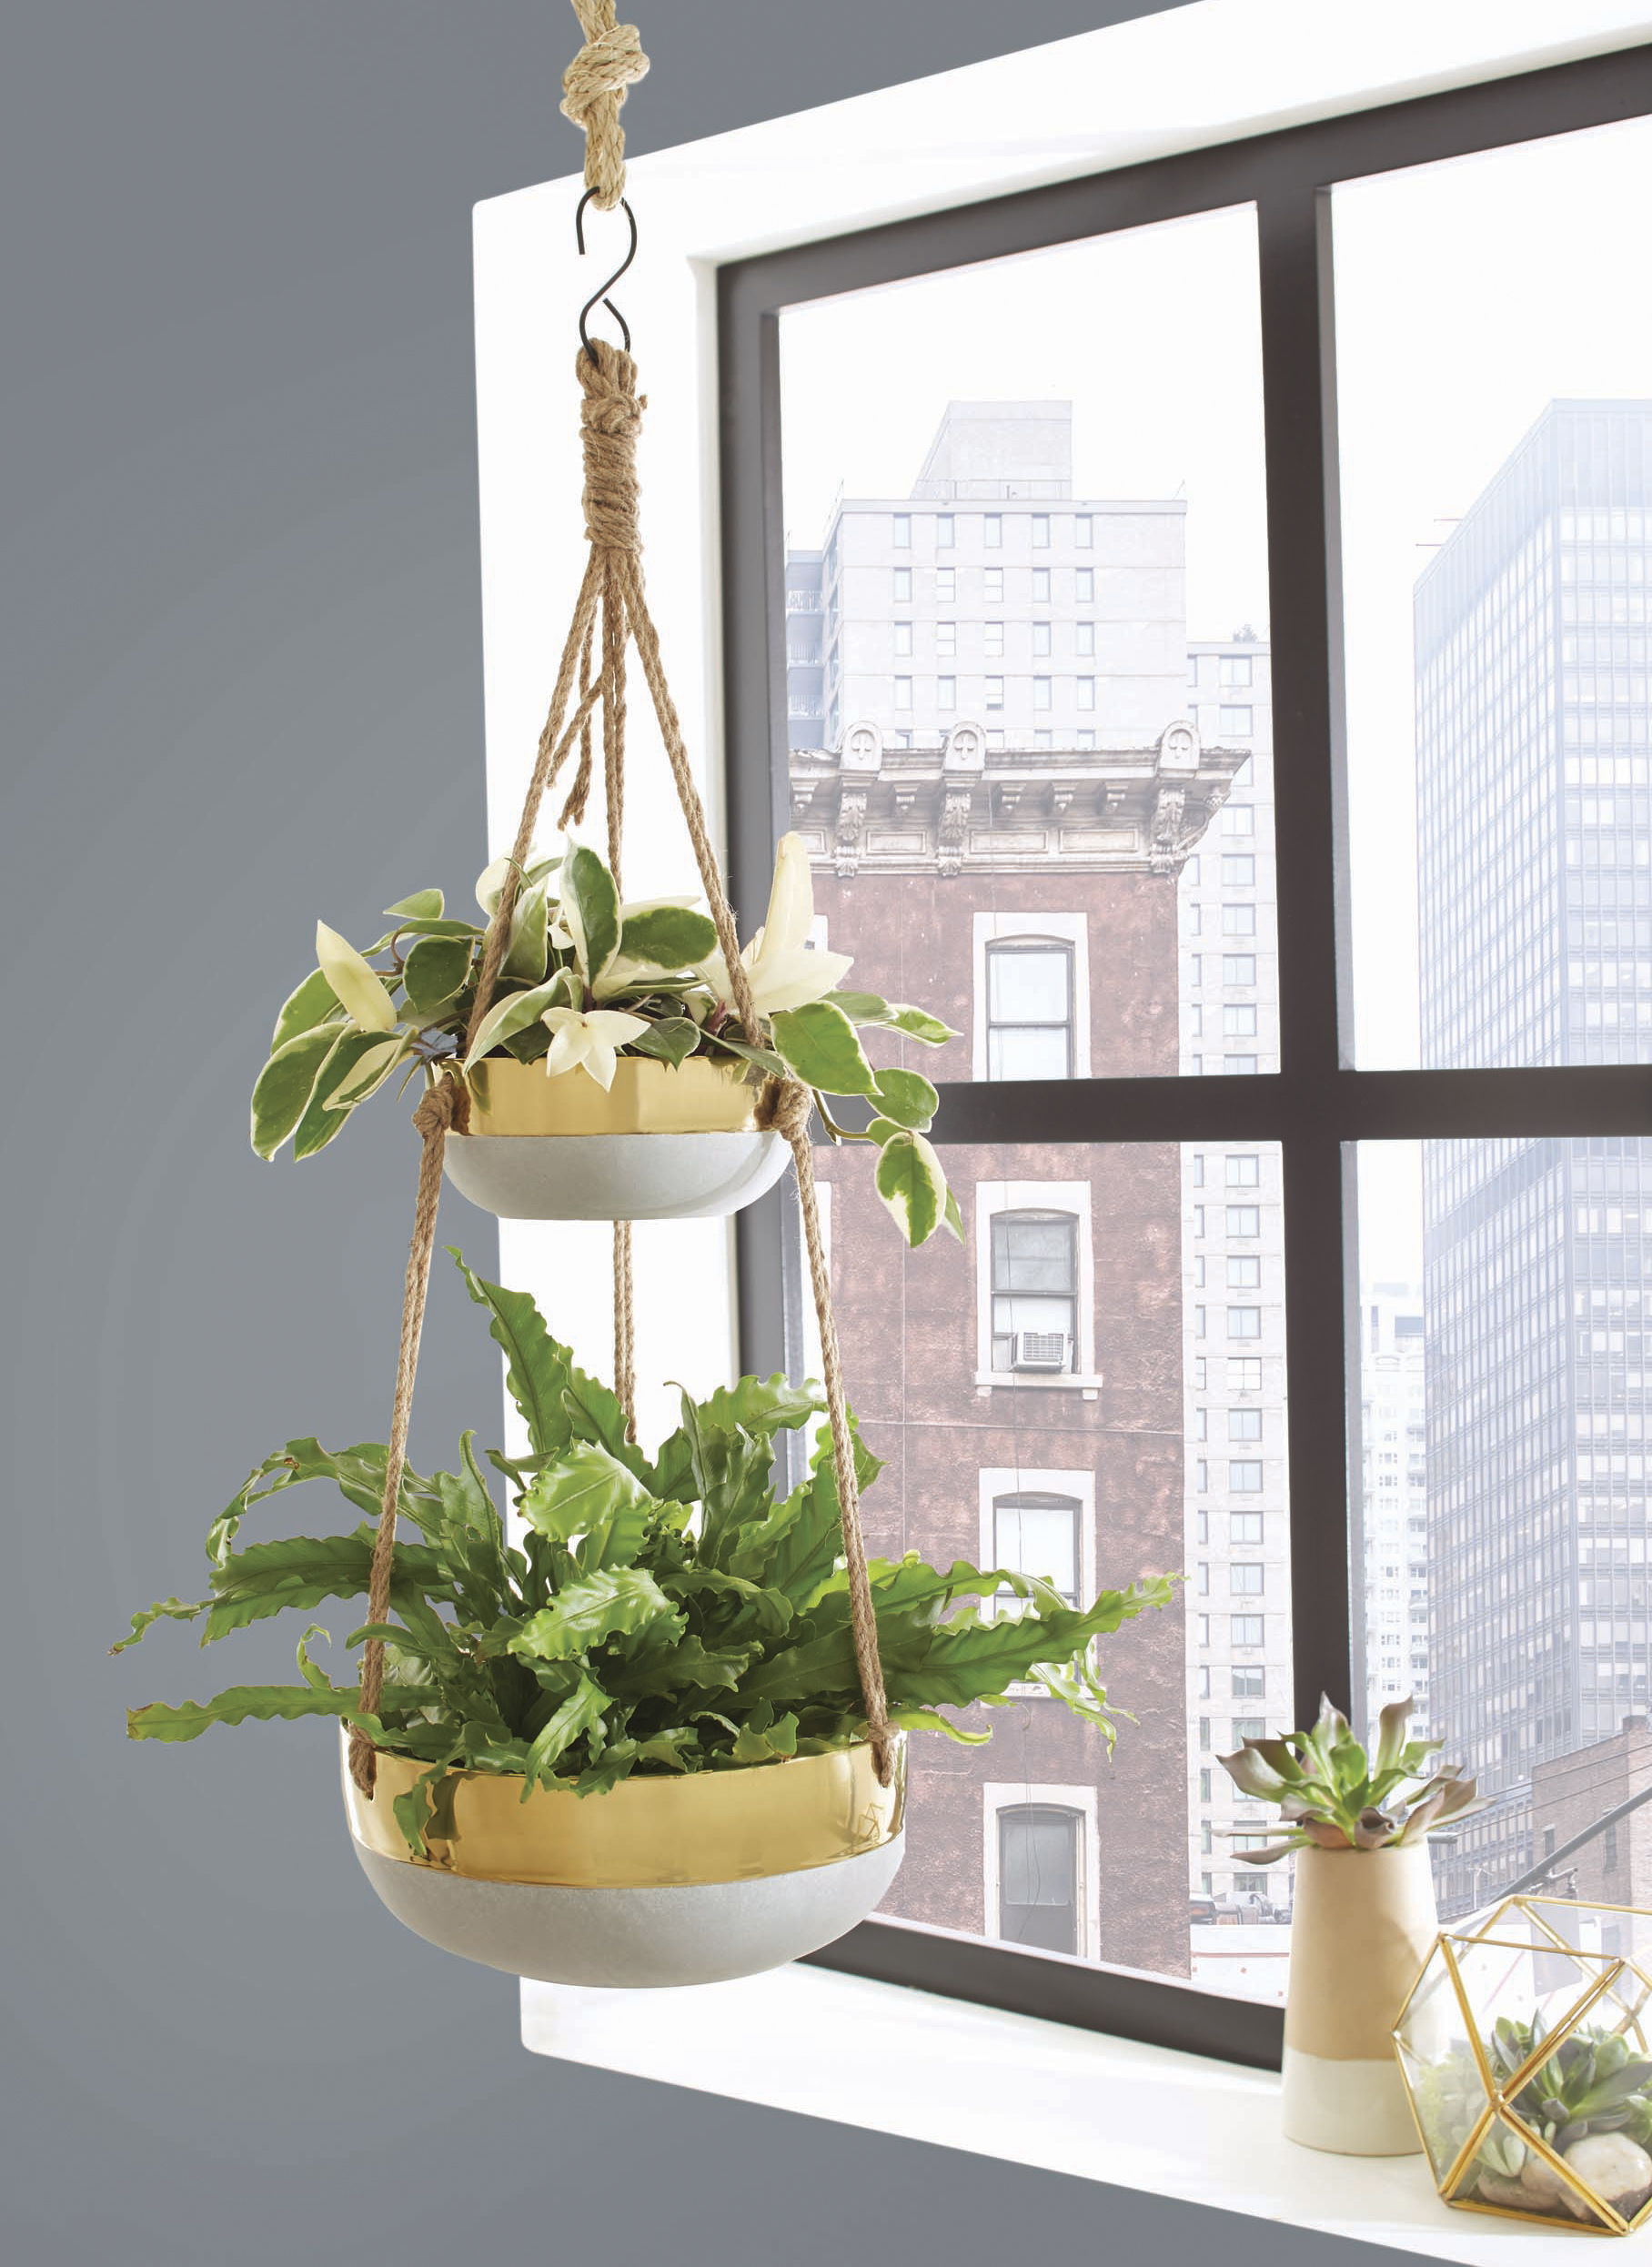 Better Homes and Gardens Faison Outdoor Double Hanging Planter by HK YIBO CERAMICS LIMITED